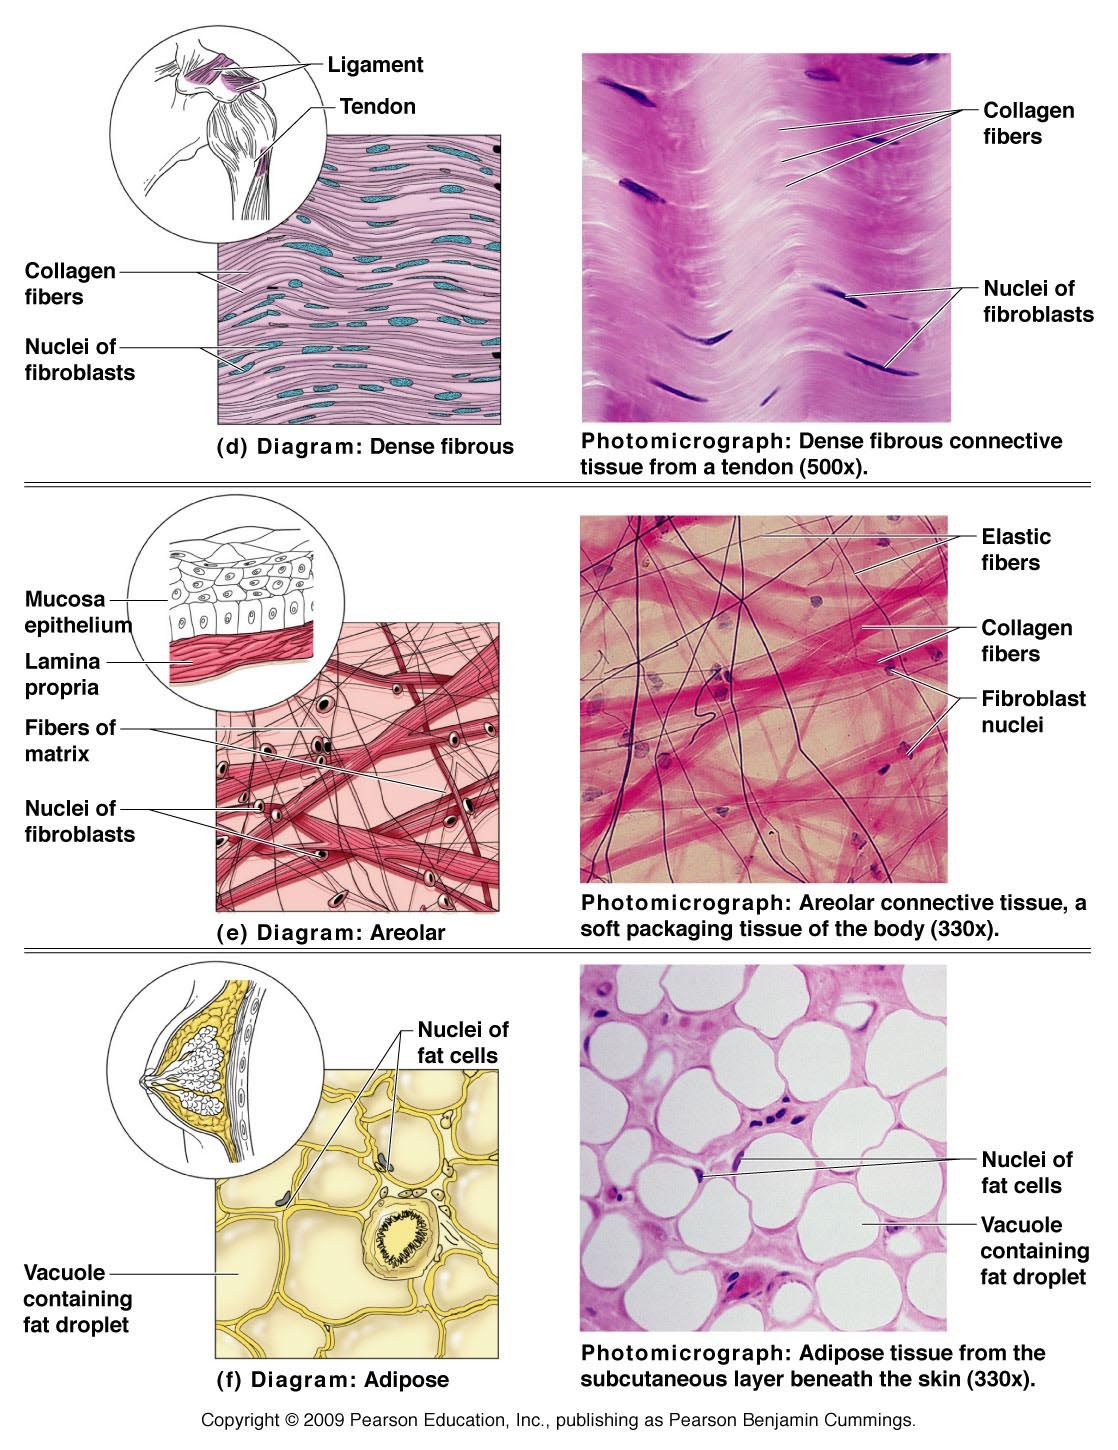 Human Tissue Biology Pictures Connective Tissue Cells In Human